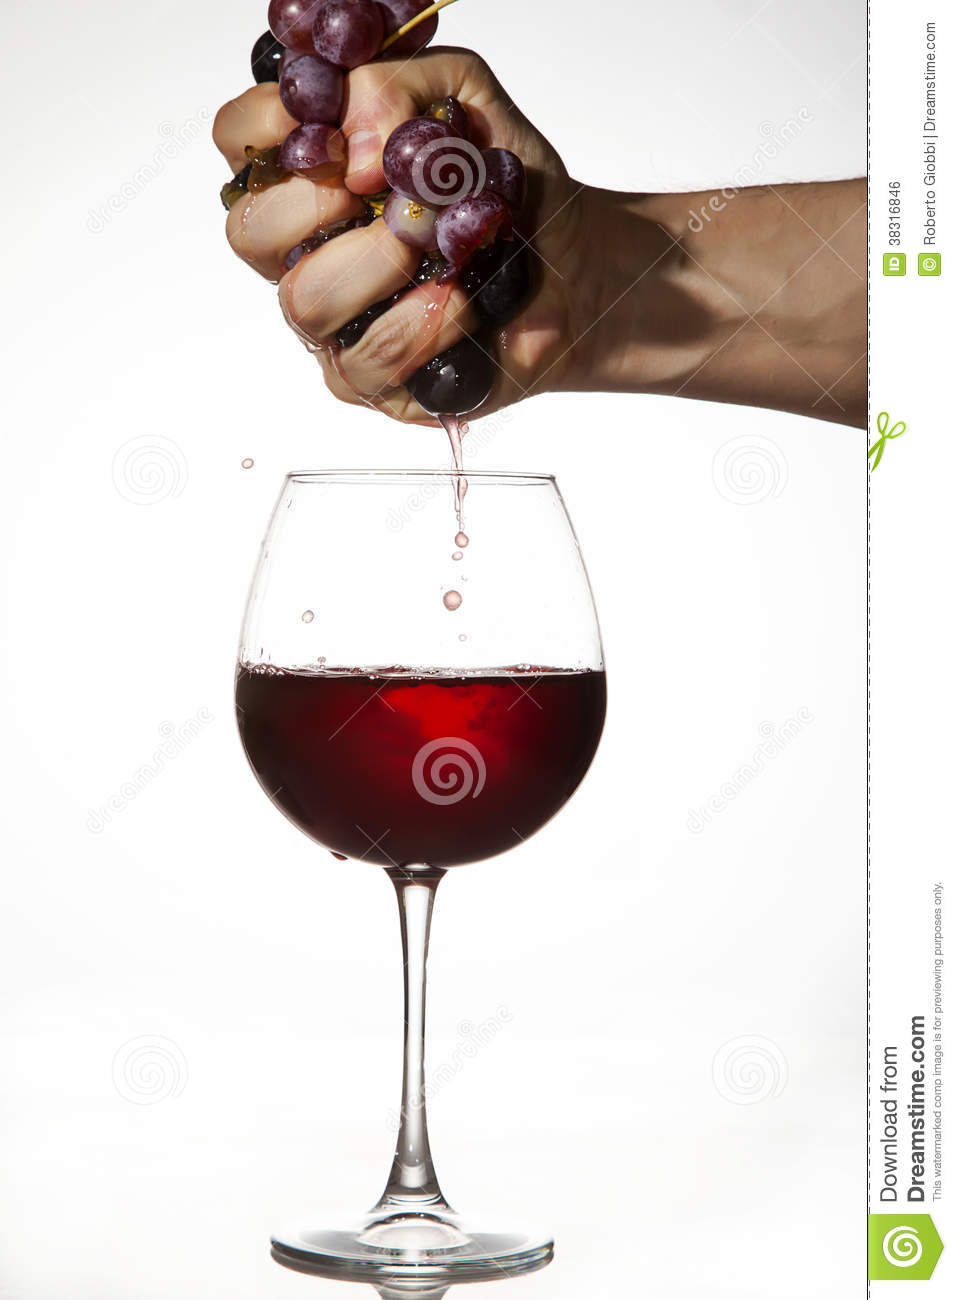 how to make wine out of grape juice